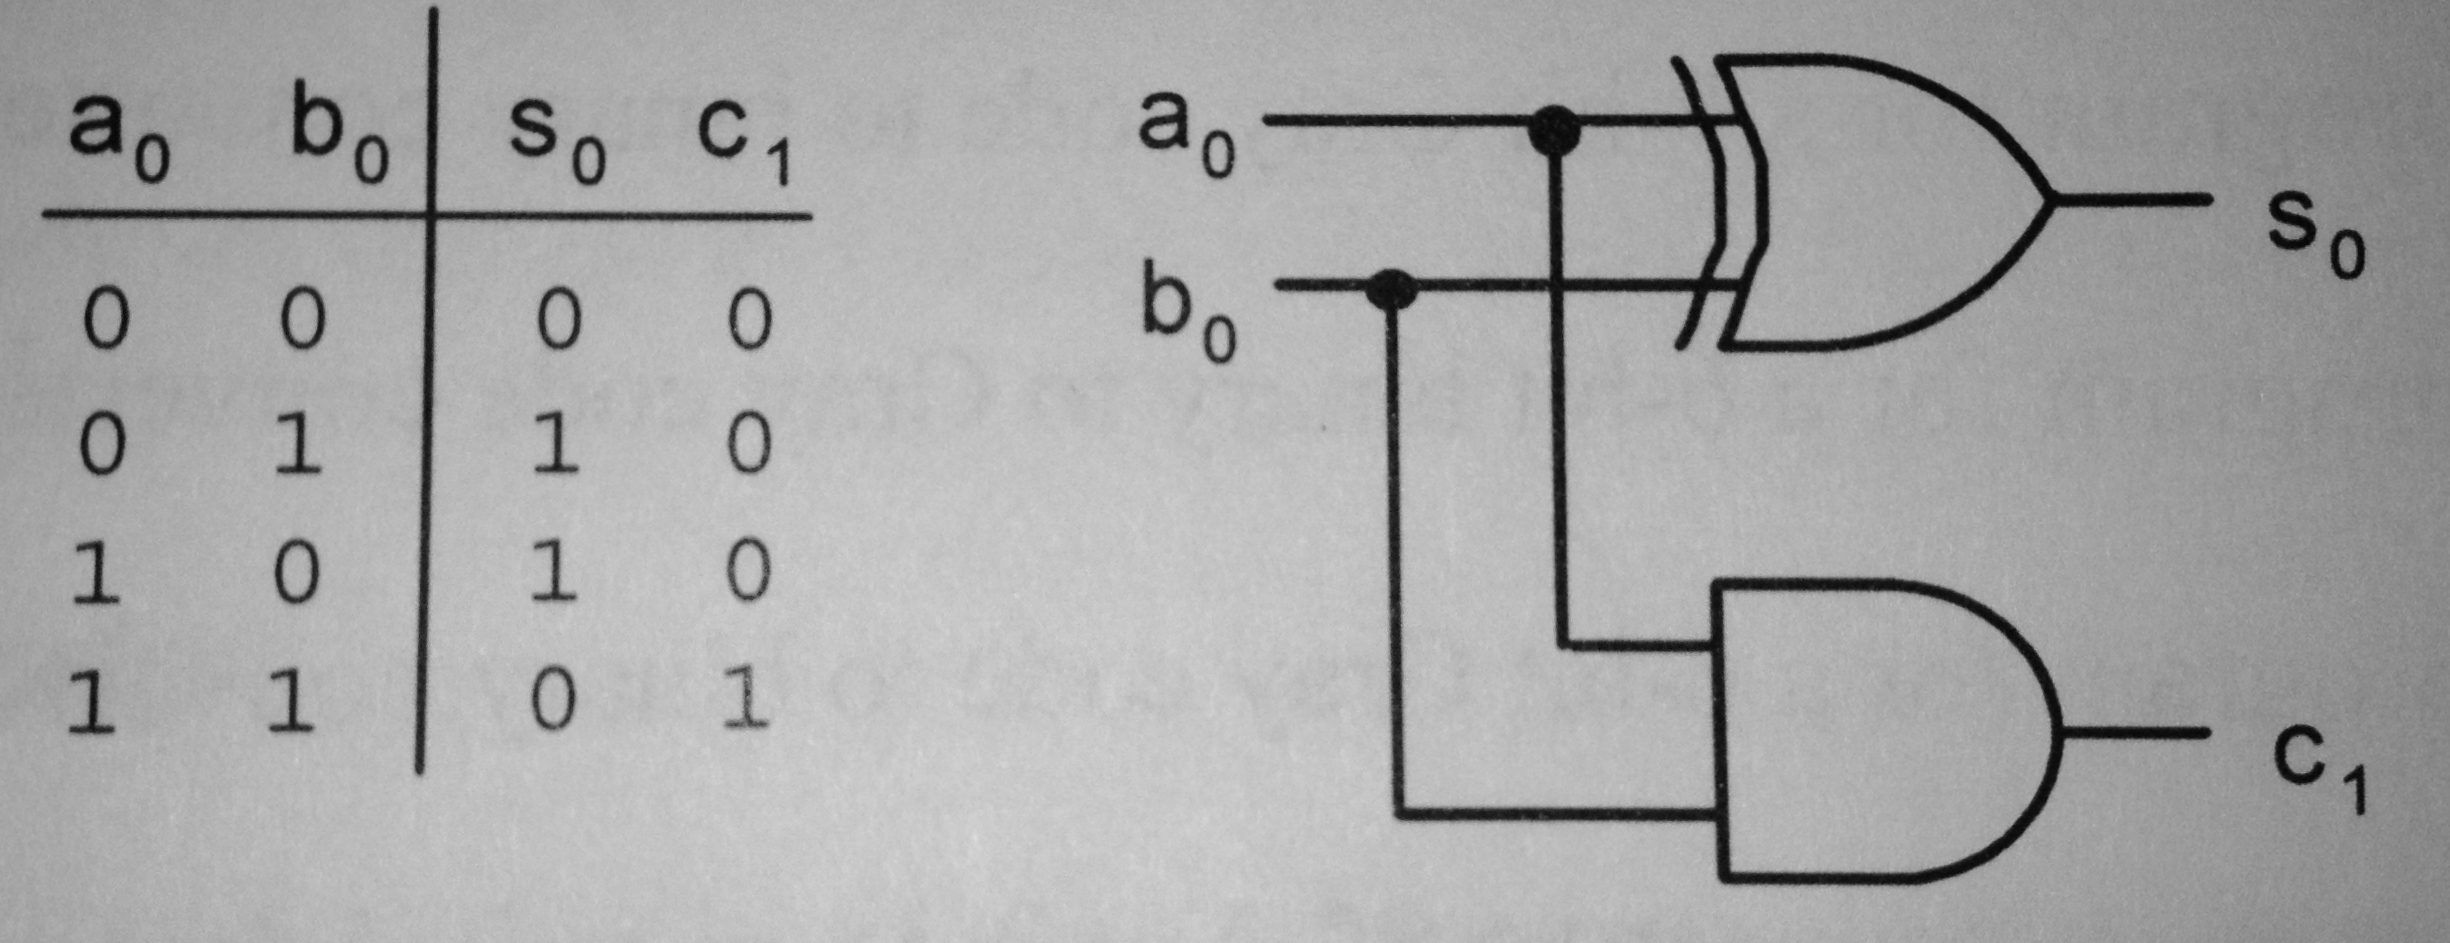 block diagram of half adder ixl tastic silhouette wiring chapter 6 arithmetic circuits computer science courses